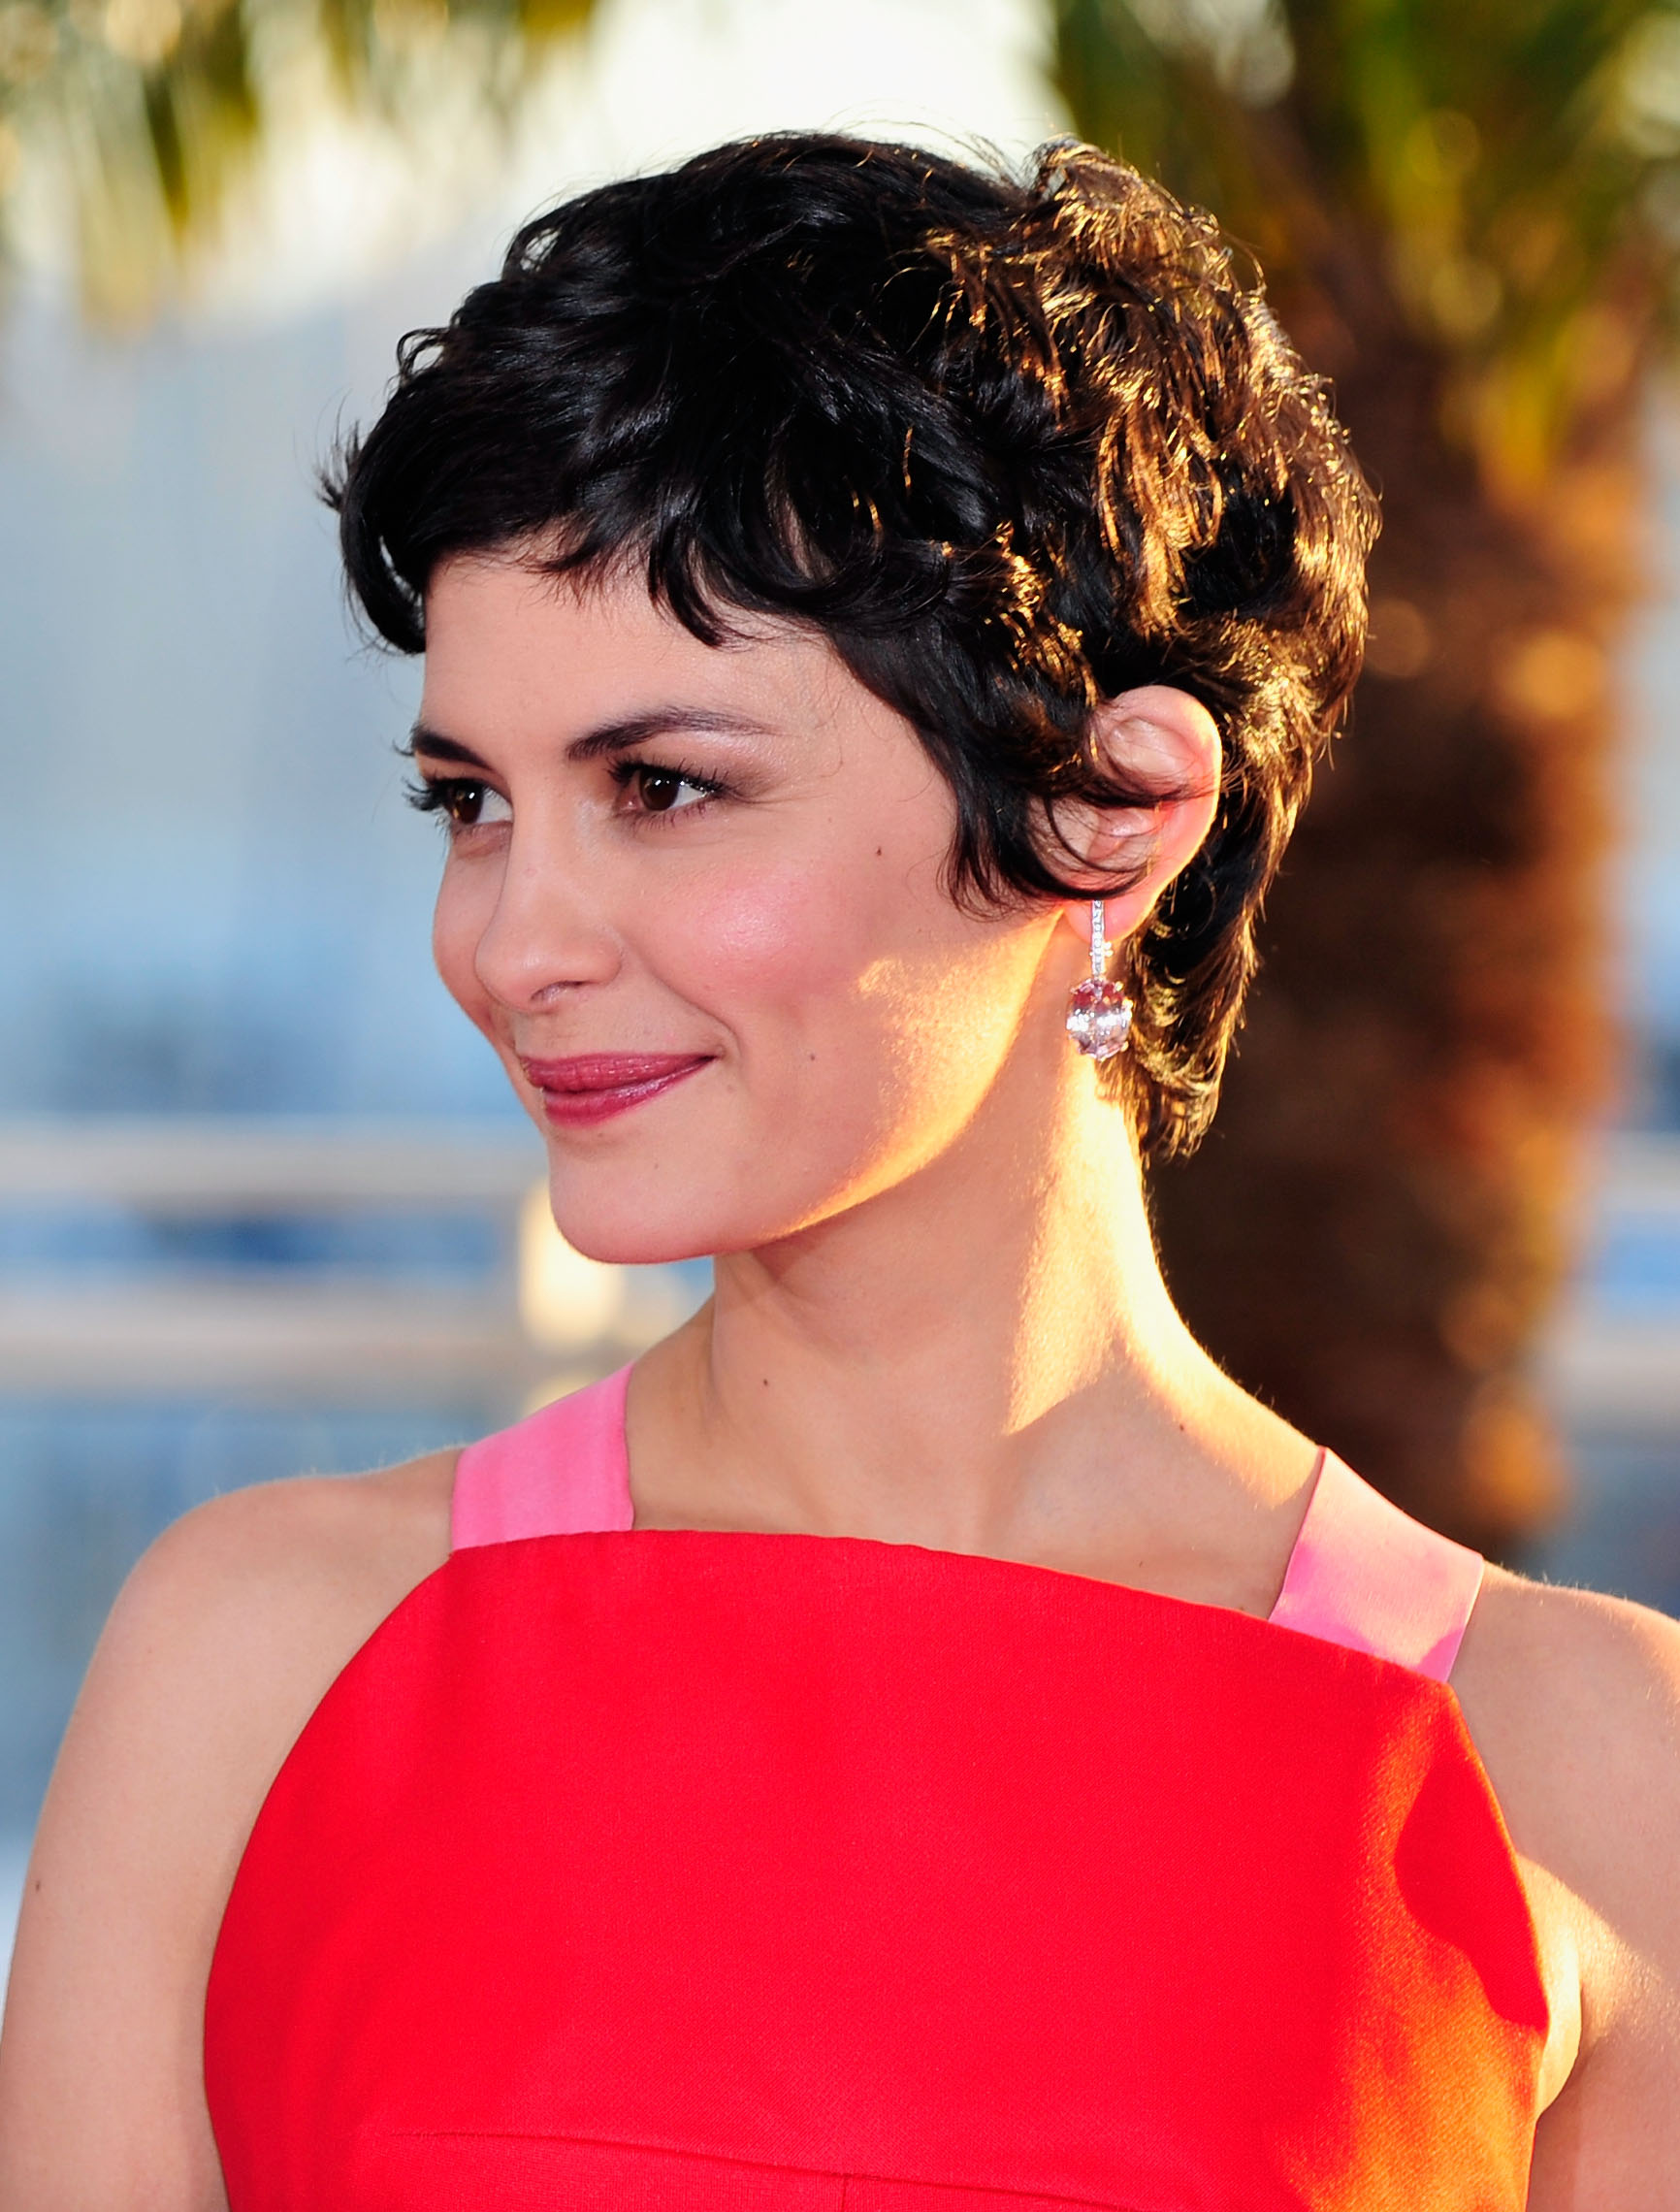 12 Reasons Having Short Hair Is The Bomb